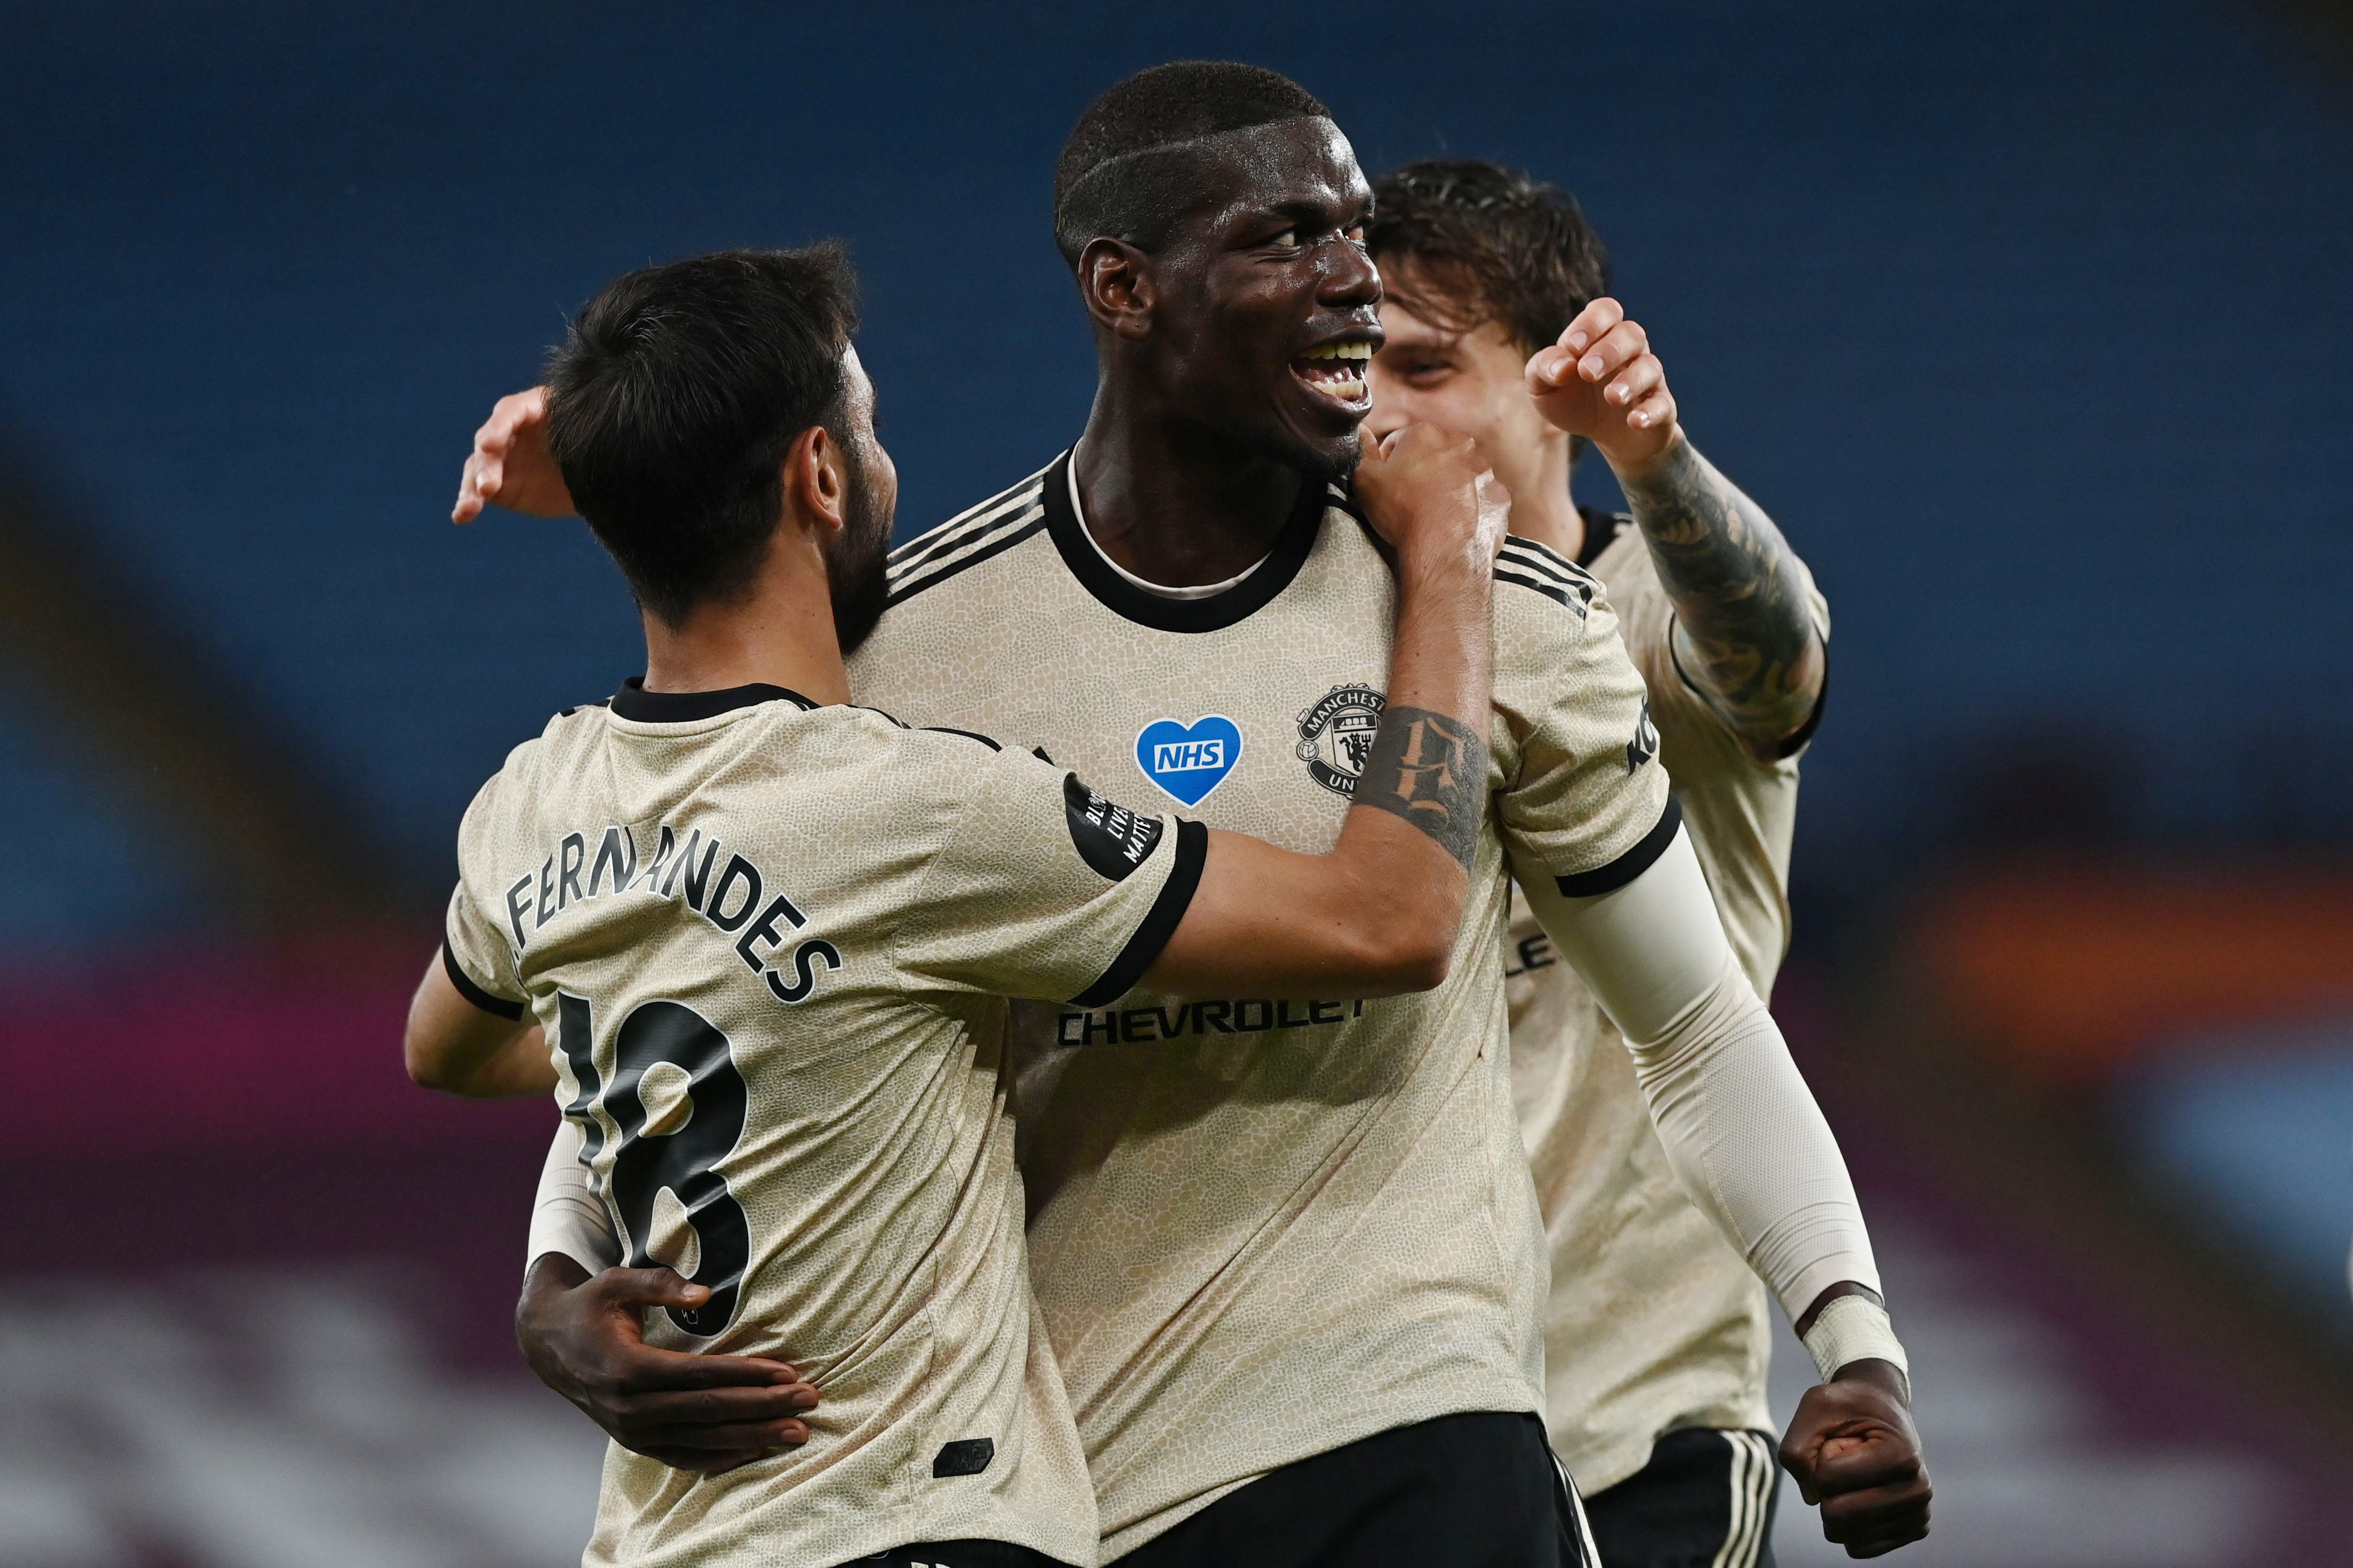 Real Madrid have no plans to sign Paul Pogba next summer (Pogba is seen celebrating in the picture)